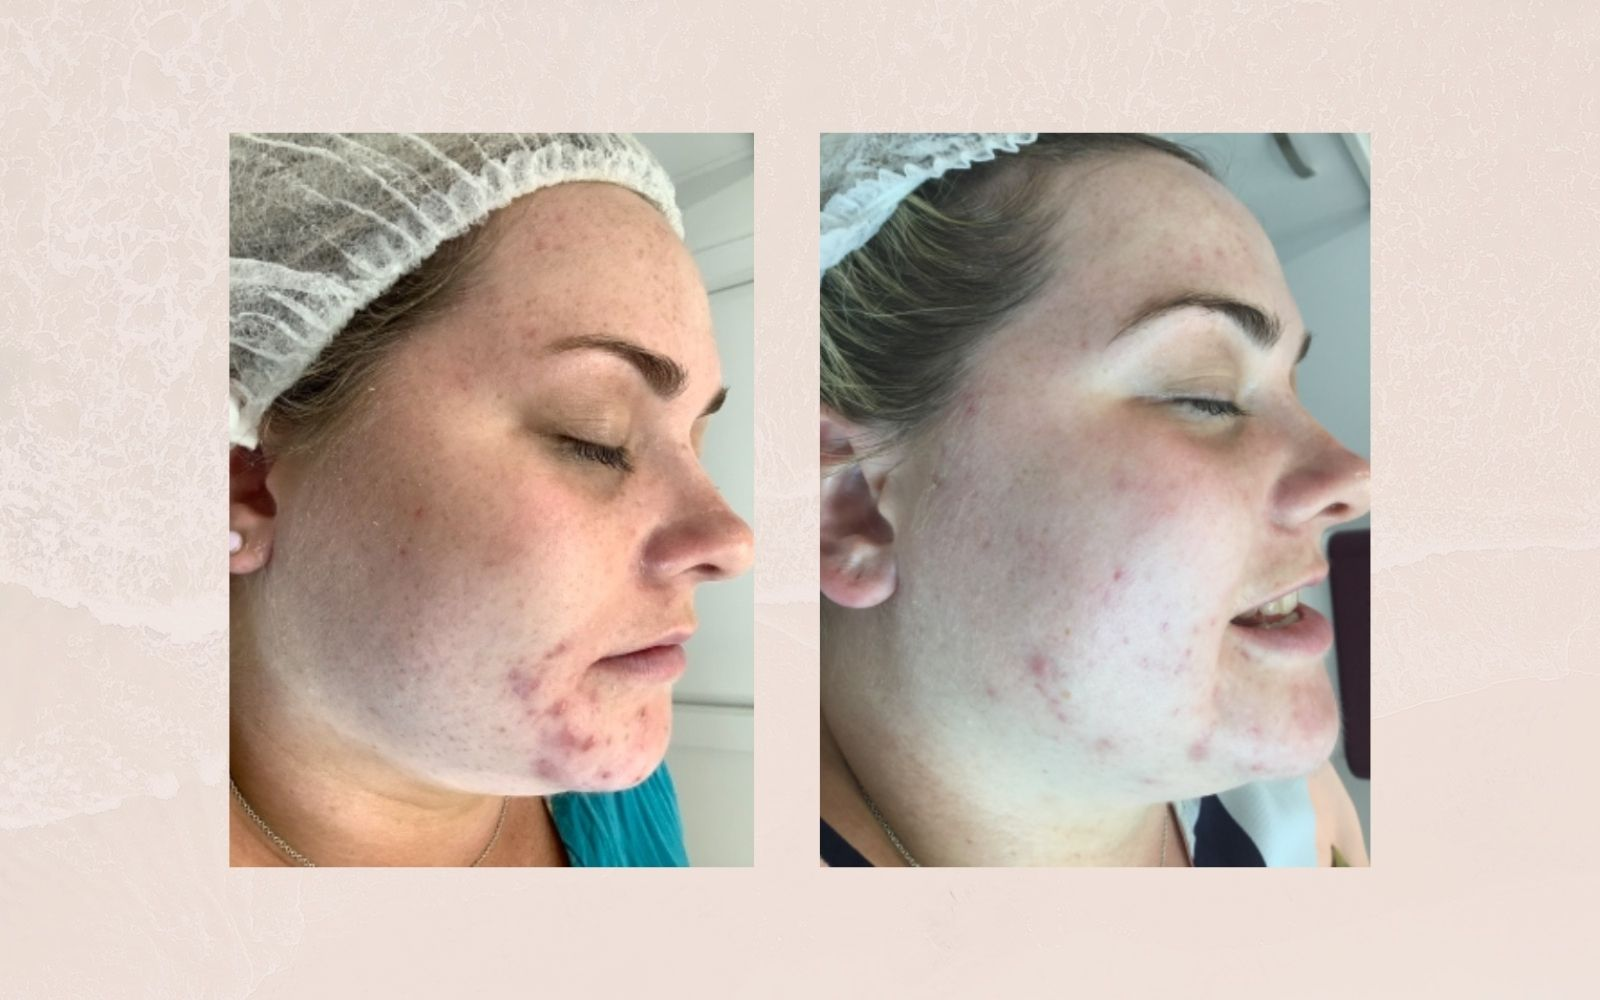 Adult acne before and after facial